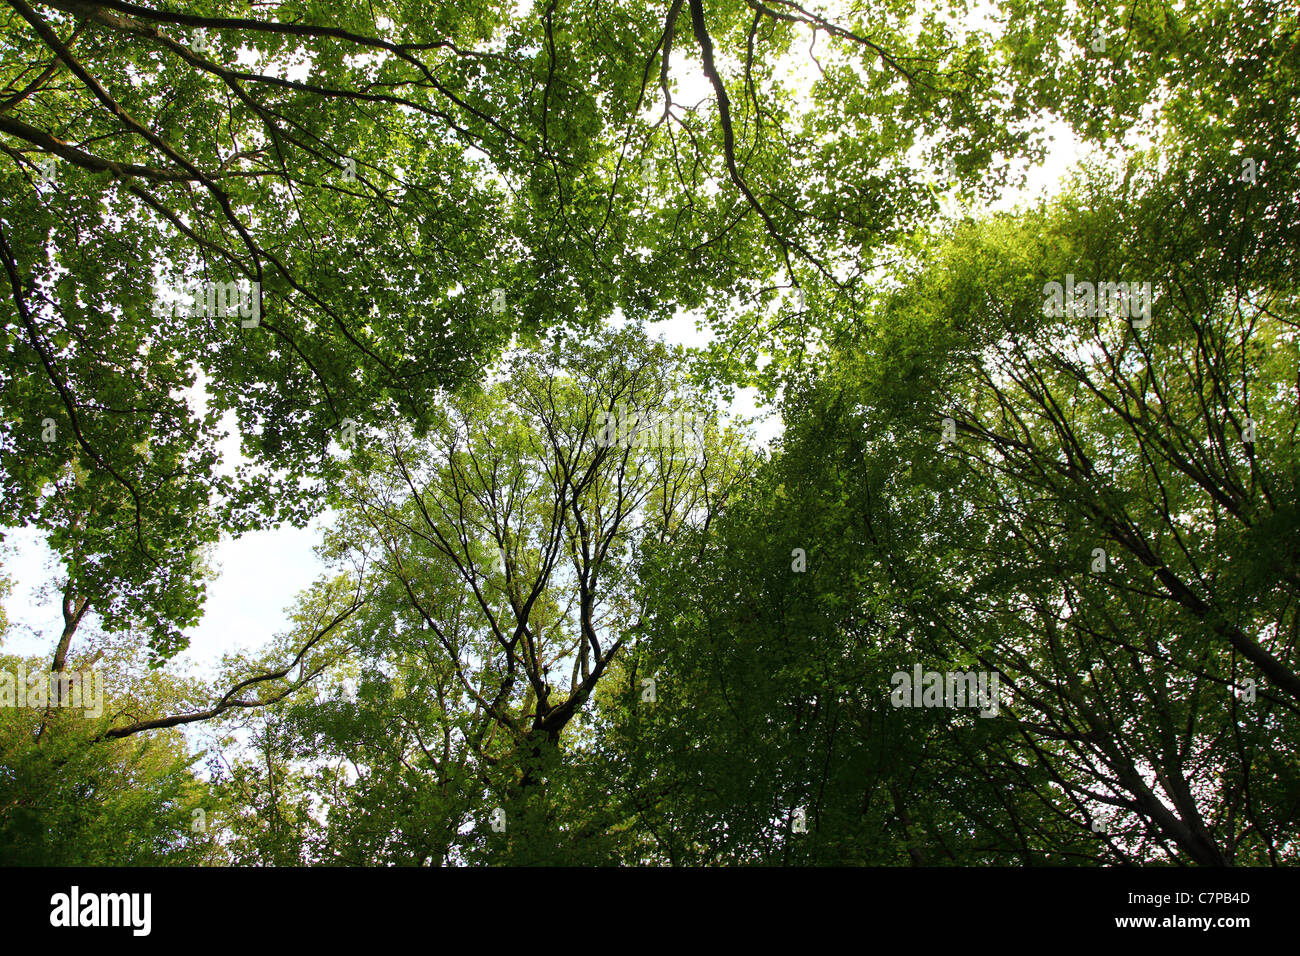 Forest, trees, canopy, deciduous trees. - Stock Image